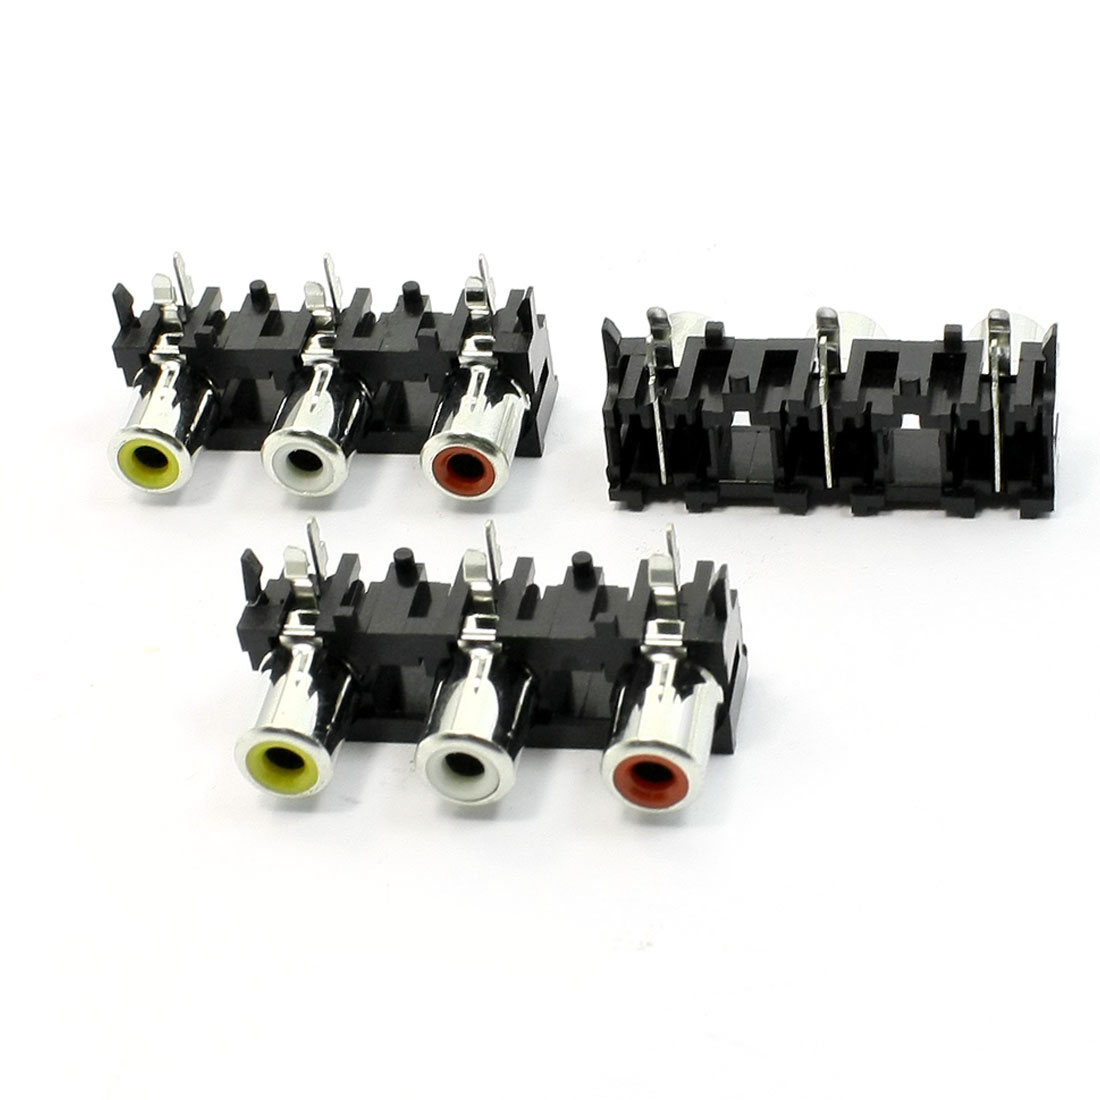 3 Pcs 3 RCA PCB Mount Female Outlet Jack Connector RCA Socket Black